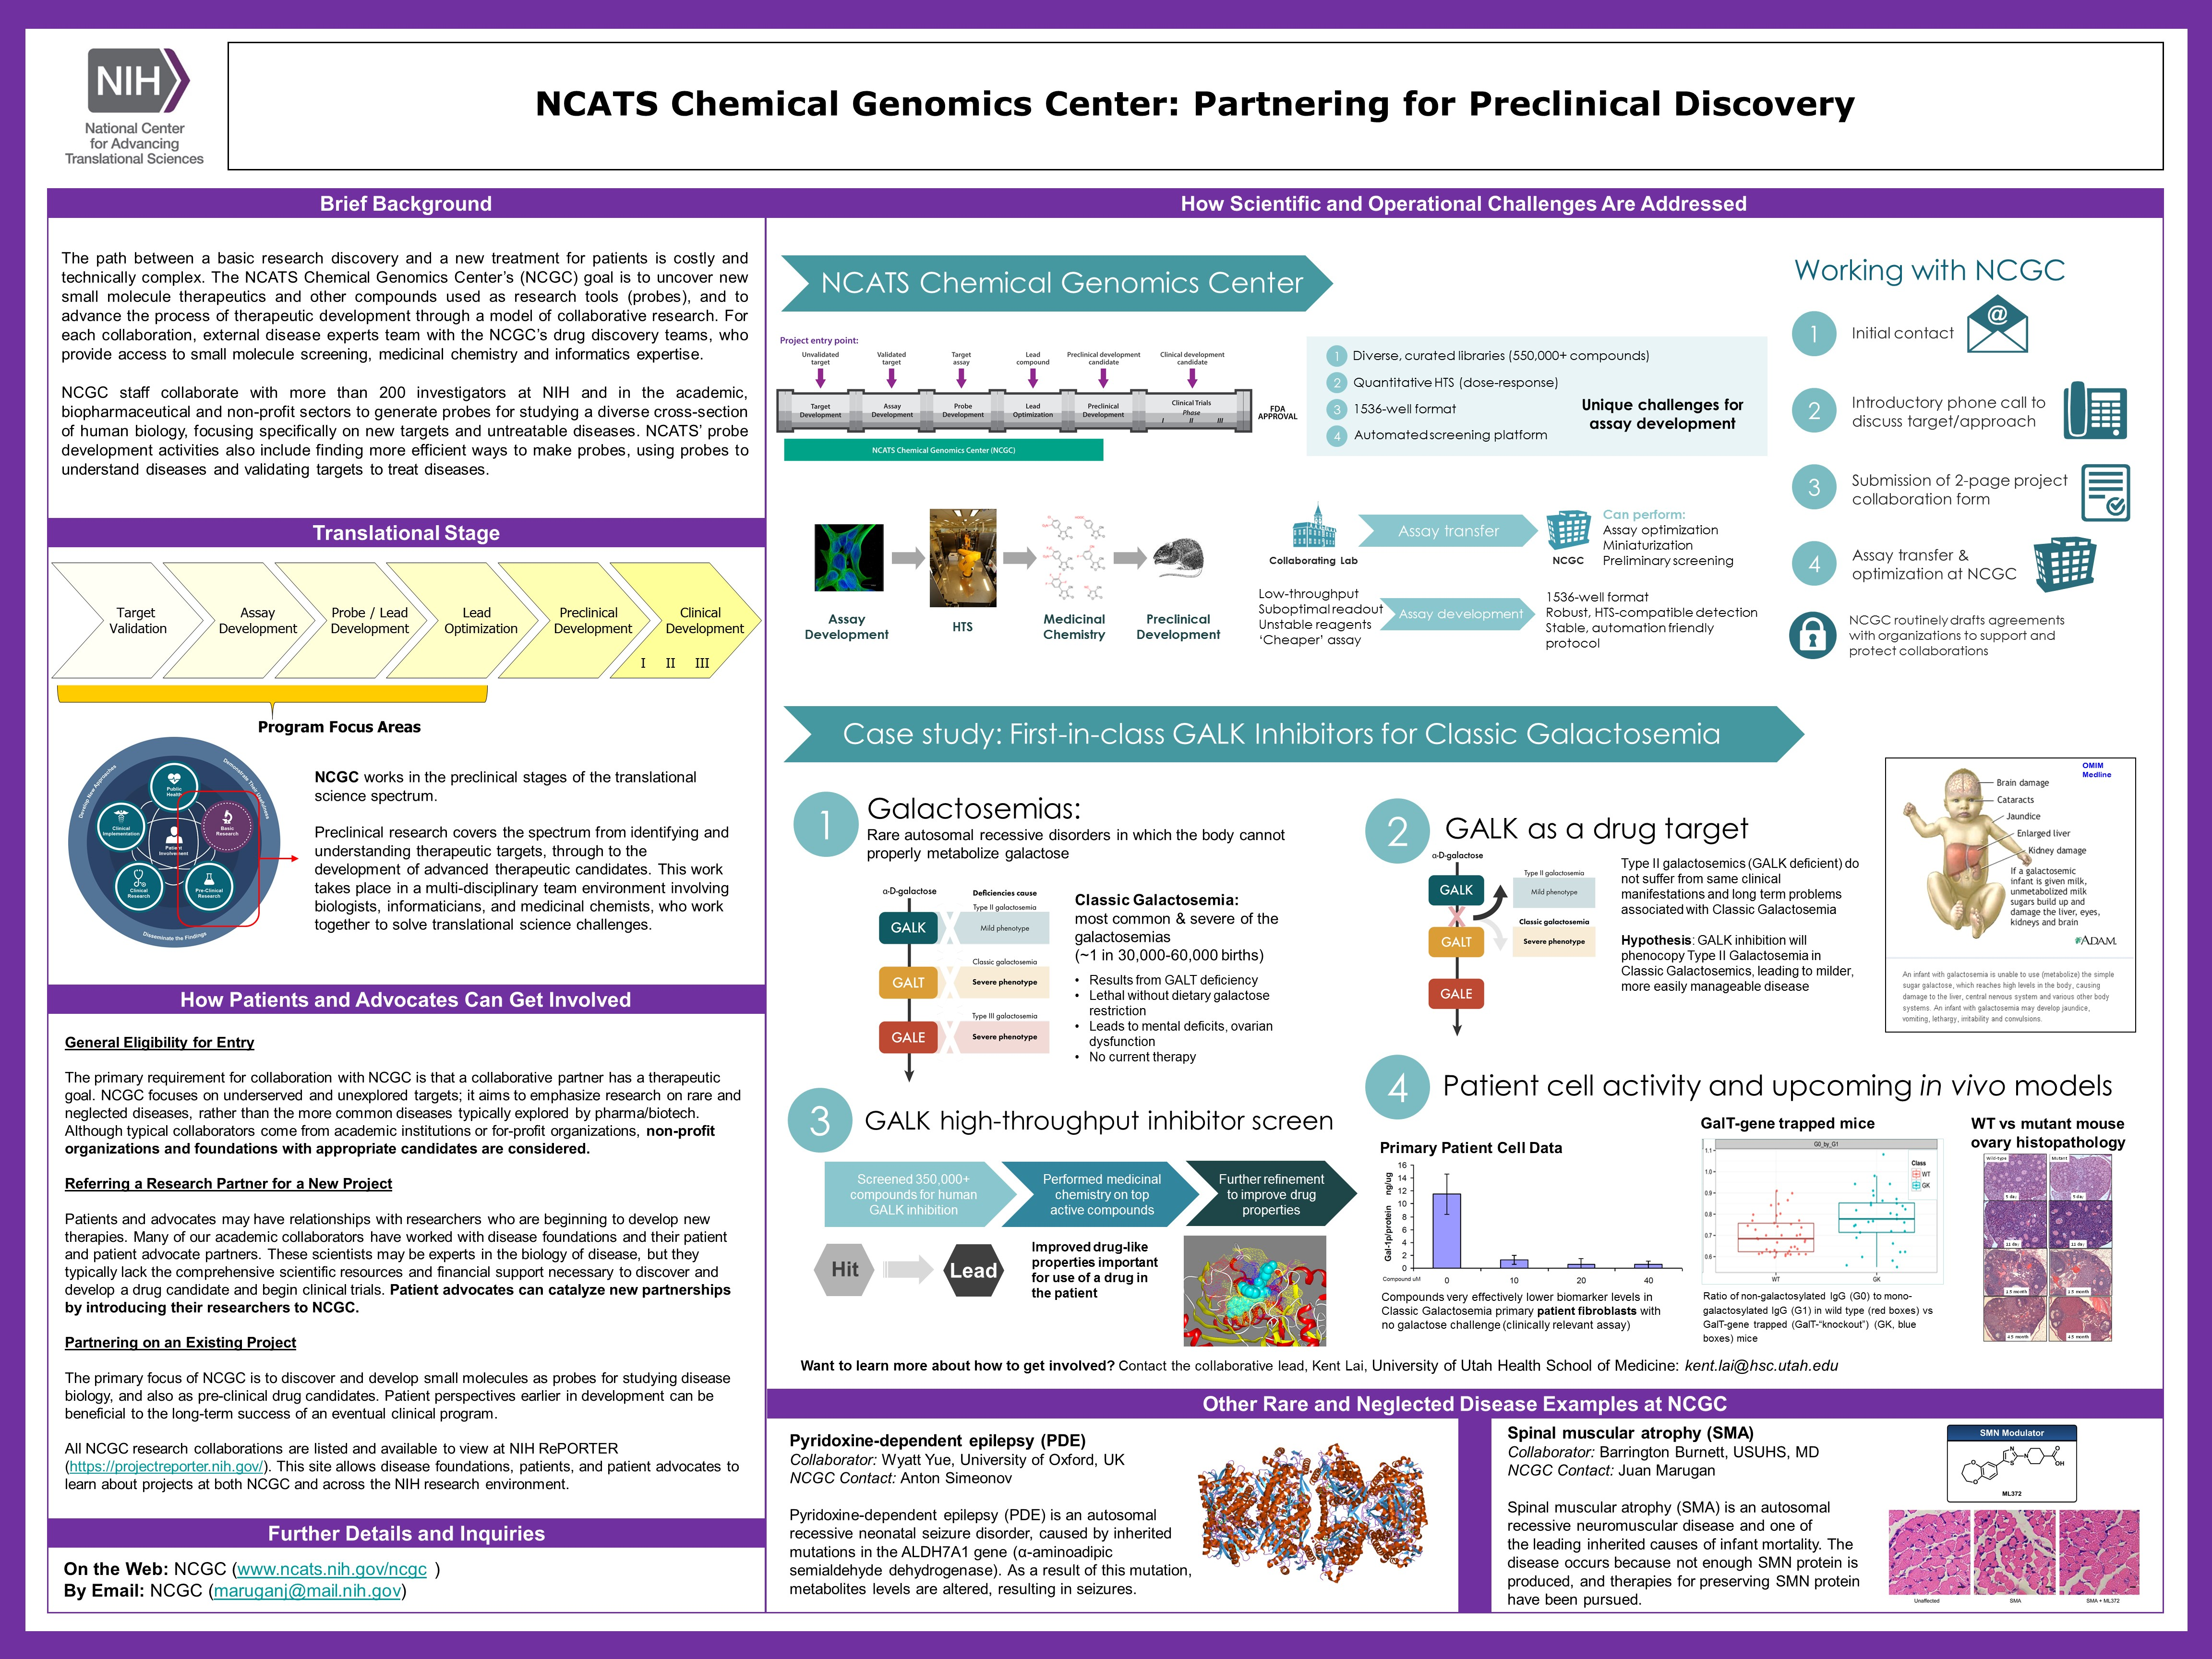 This NCATS Day poster provides background on the NCATS Chemical Genomics Center: Partnering for Preclinical Discovery, including goals, where it falls within the path of drug and therapeutics development and the translational science spectrum, how patients and advocates can get involved, and how NCATS addresses scientific and operational challenges.